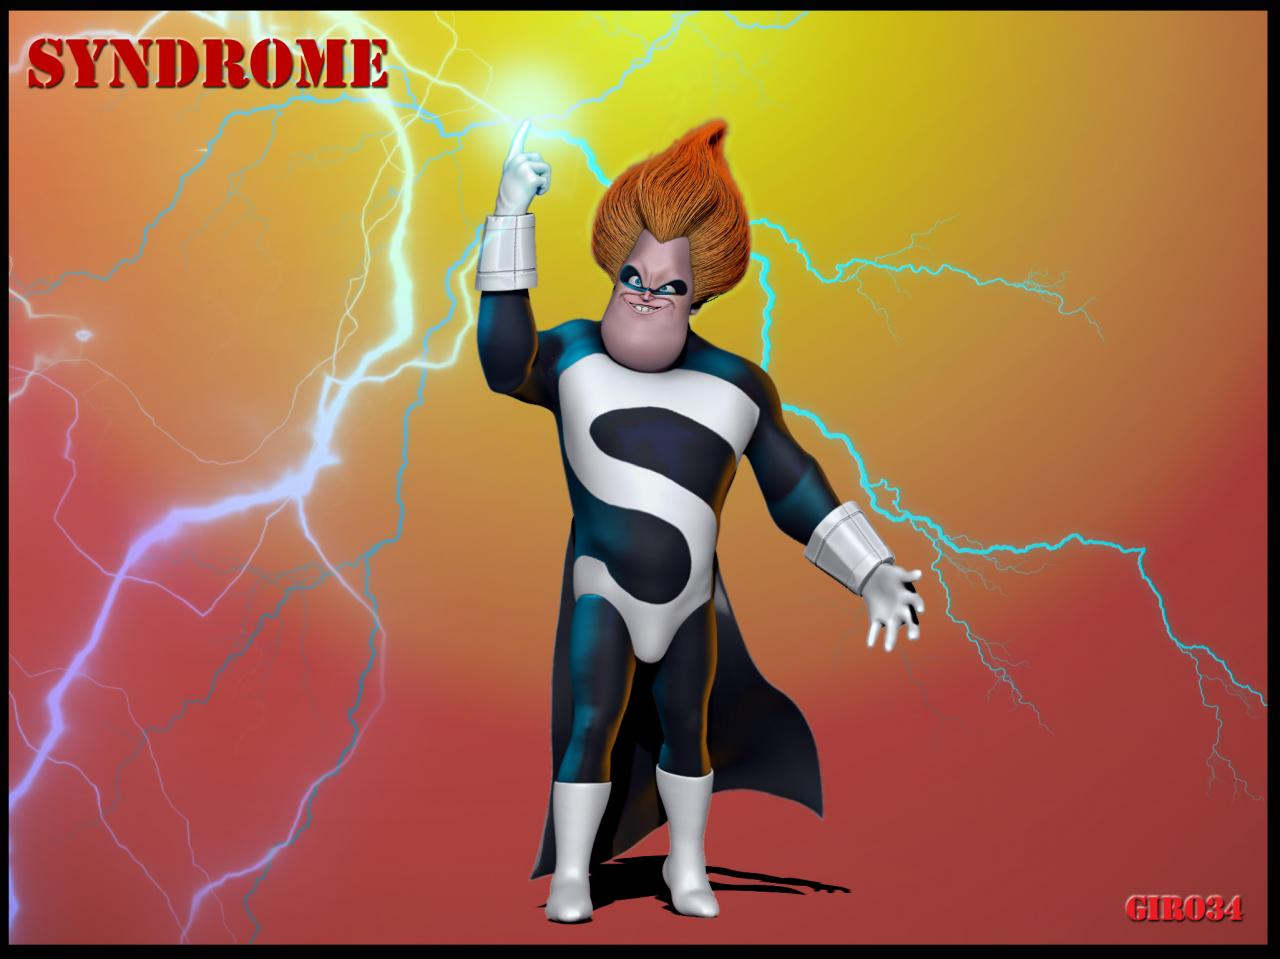 Syndrome 2